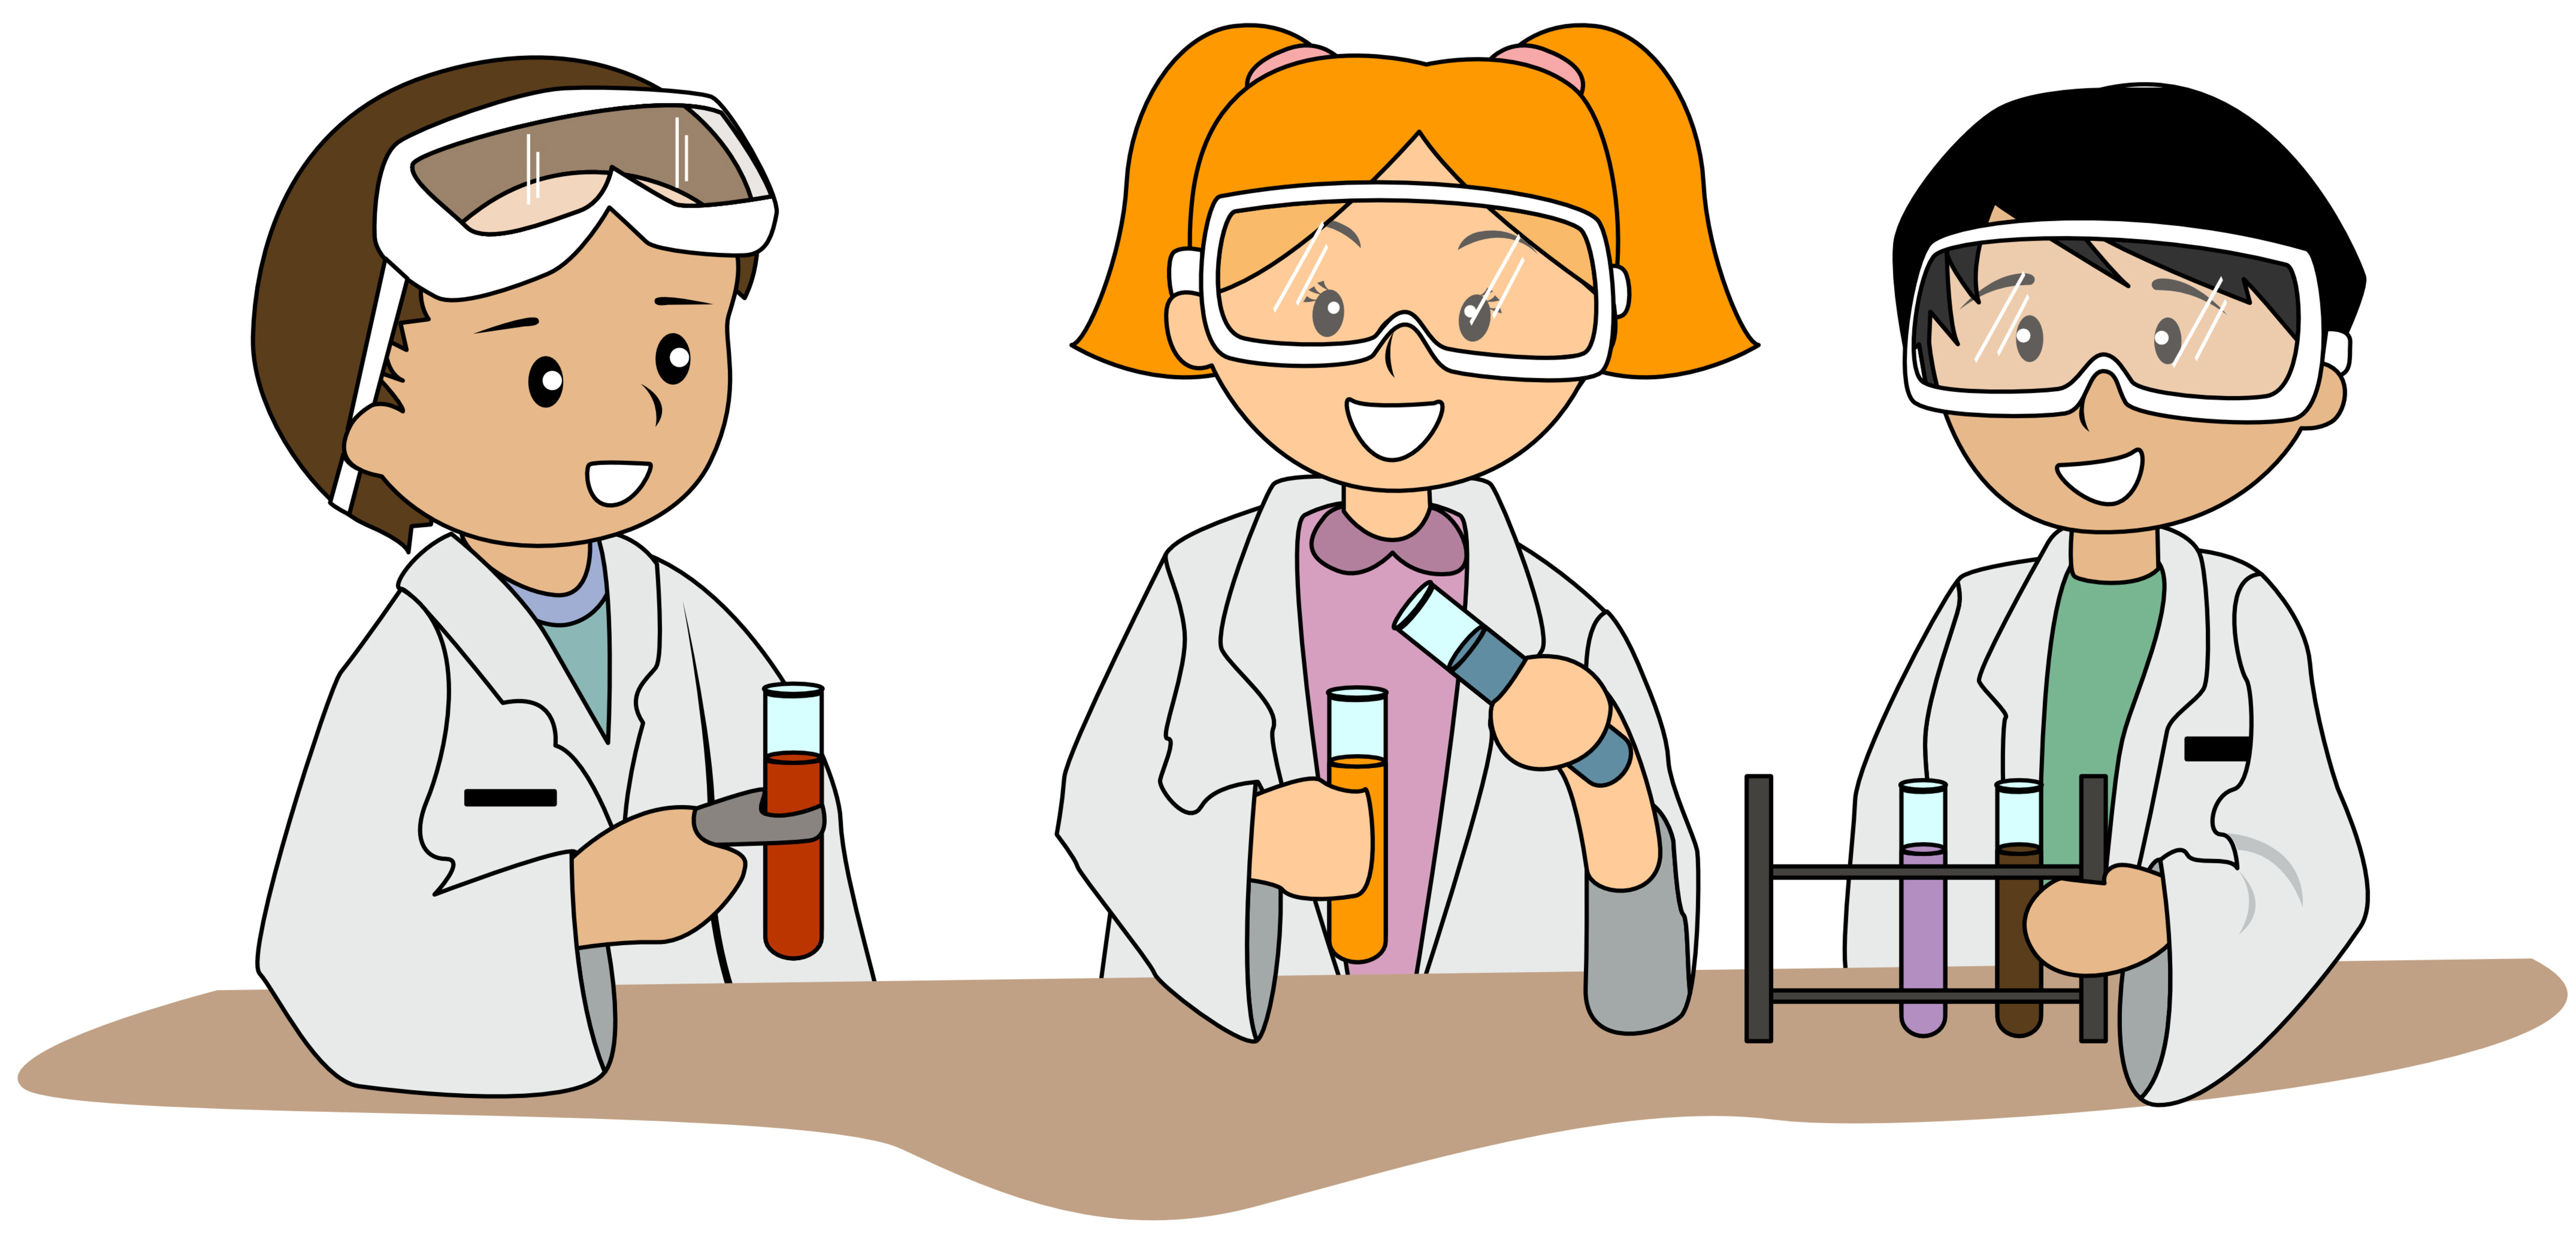 Kids with science clipart png freeuse stock Science clipart for kids - ClipartFest png freeuse stock